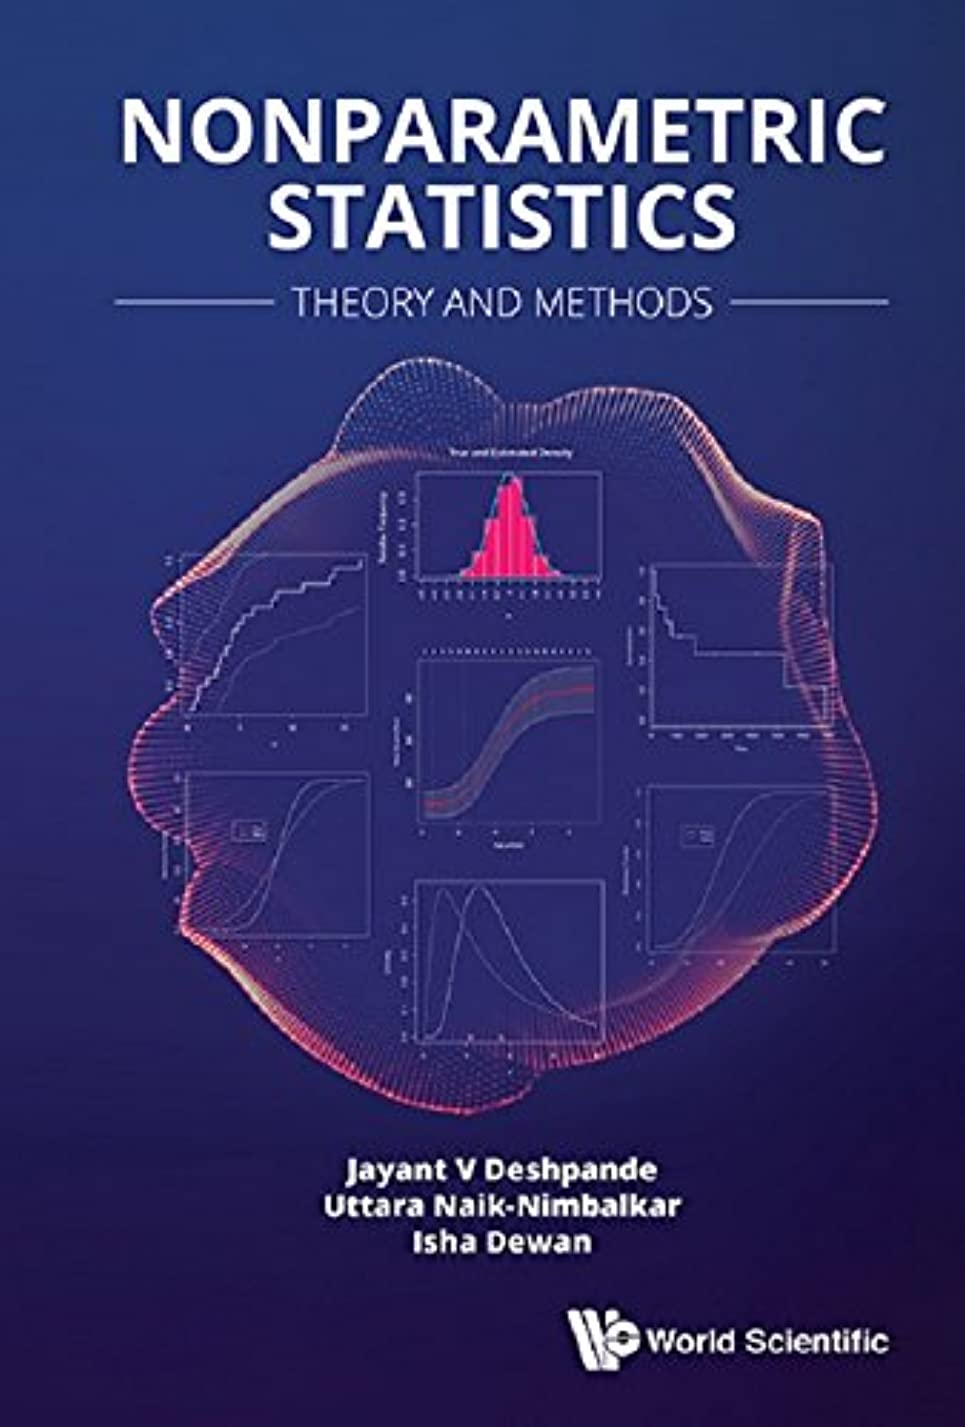 復活アームストロングペルーNonparametric Statistics:Theory and Methods (English Edition)